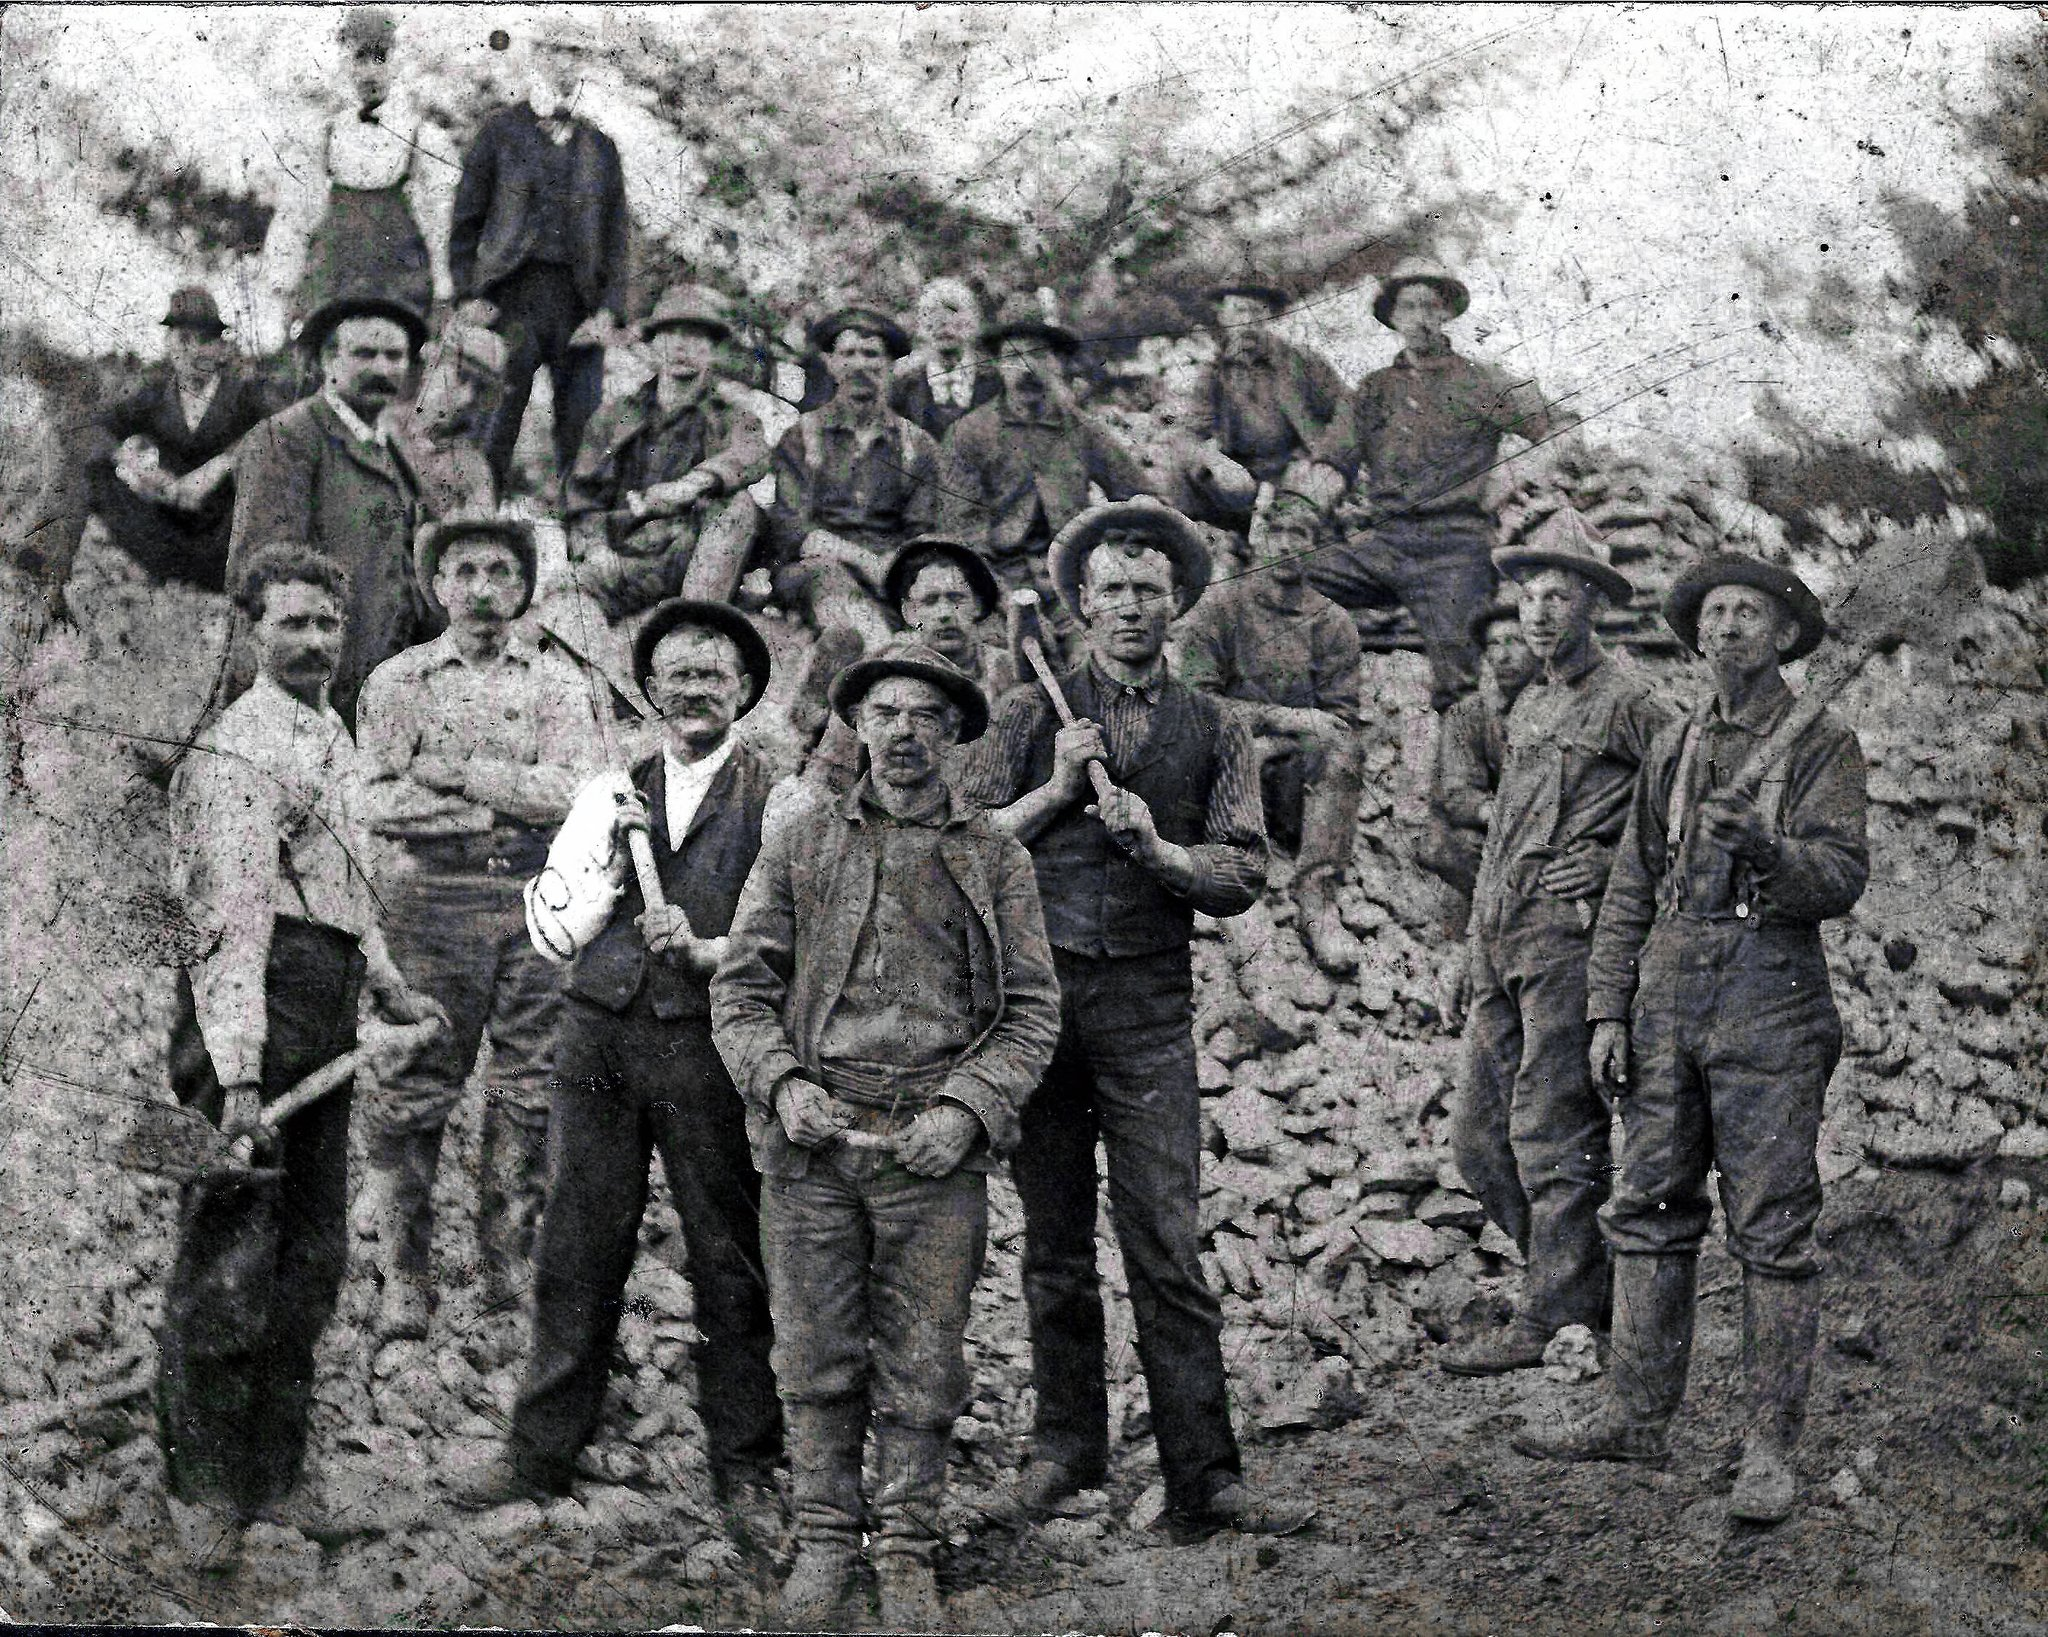 Miners at Enterprise Mine, #Platteville from the Grant Co. Hist. Society https://t.co/8gAsXEiIW5 #MinersDay #Wisconsin #History https://t.co/VrriXQGfXw